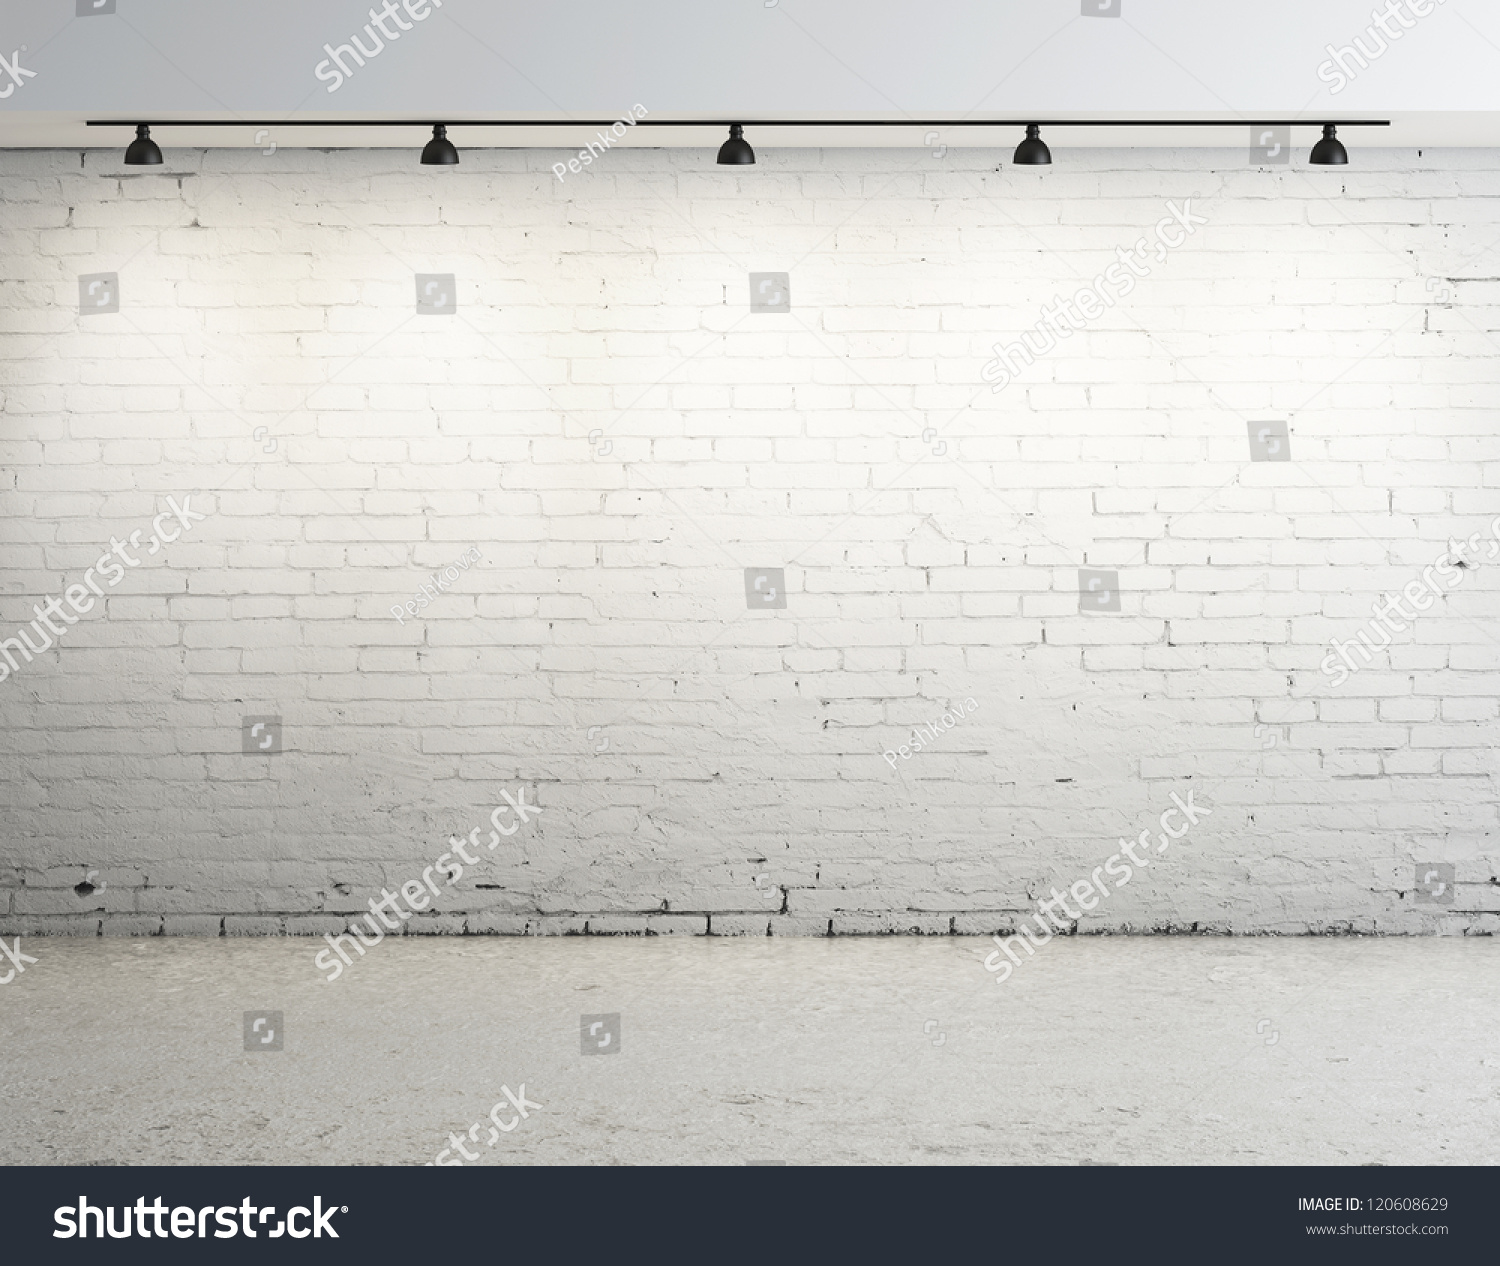 Brick Concrete Room Ceiling Lamp Stock Photo 120608629 - Shutterstock for Ceiling Lamp Texture  242xkb